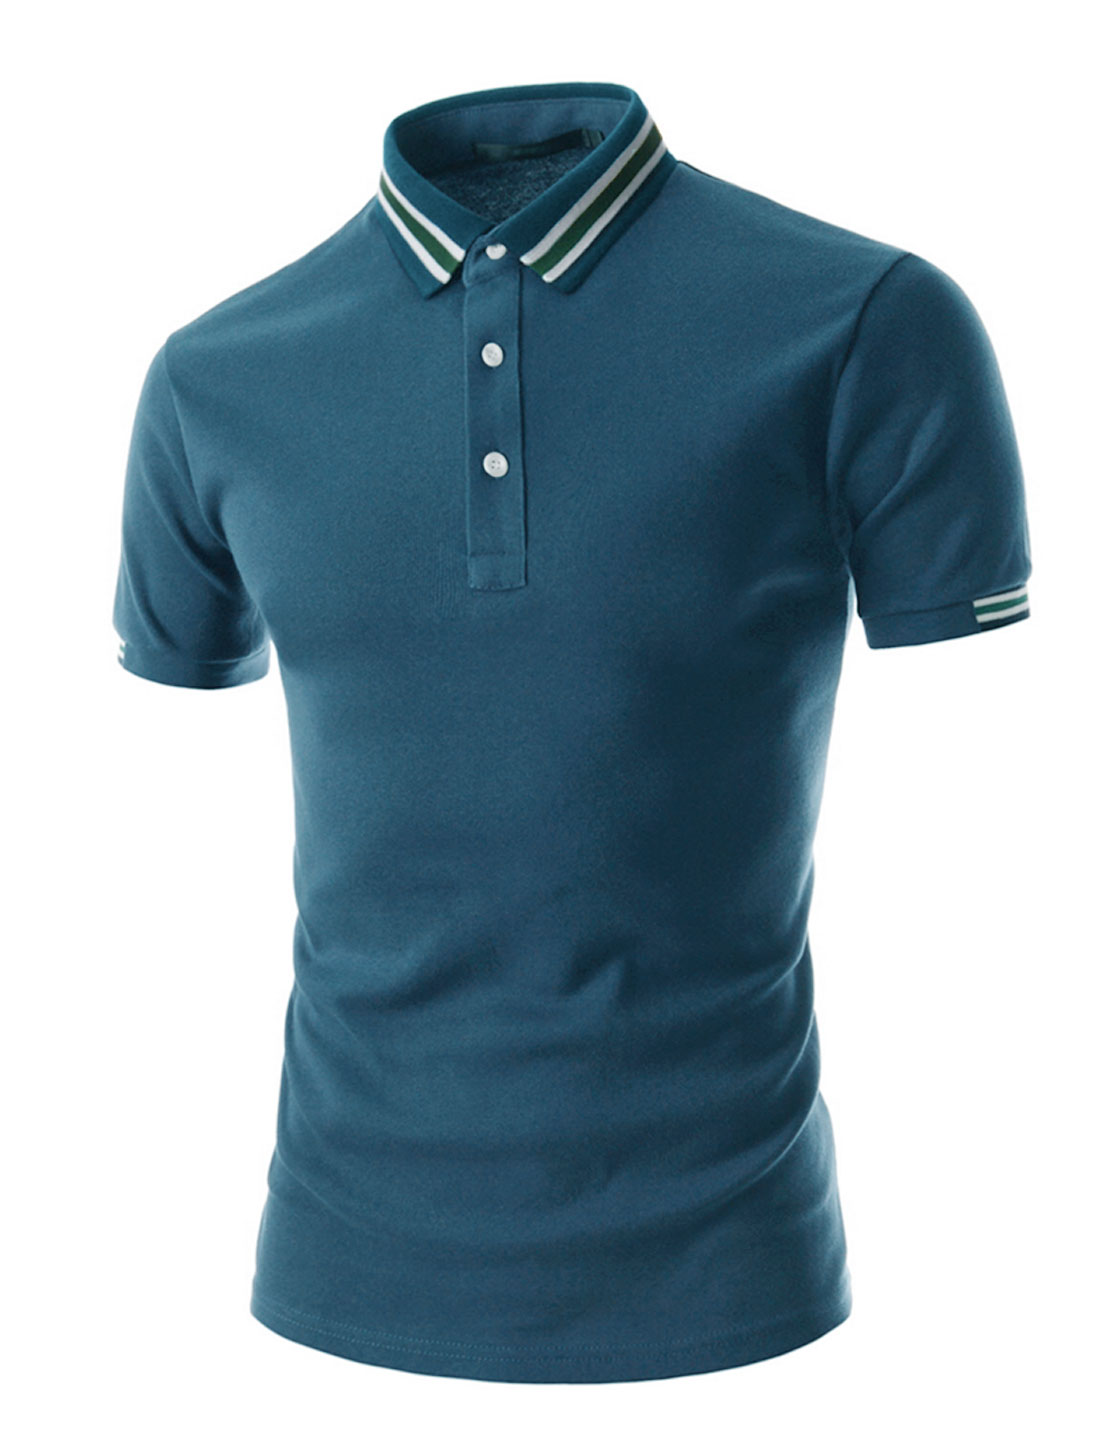 Men Stripes Detail Collar Short Sleeves Casual Polo Shirt Navy Blue M